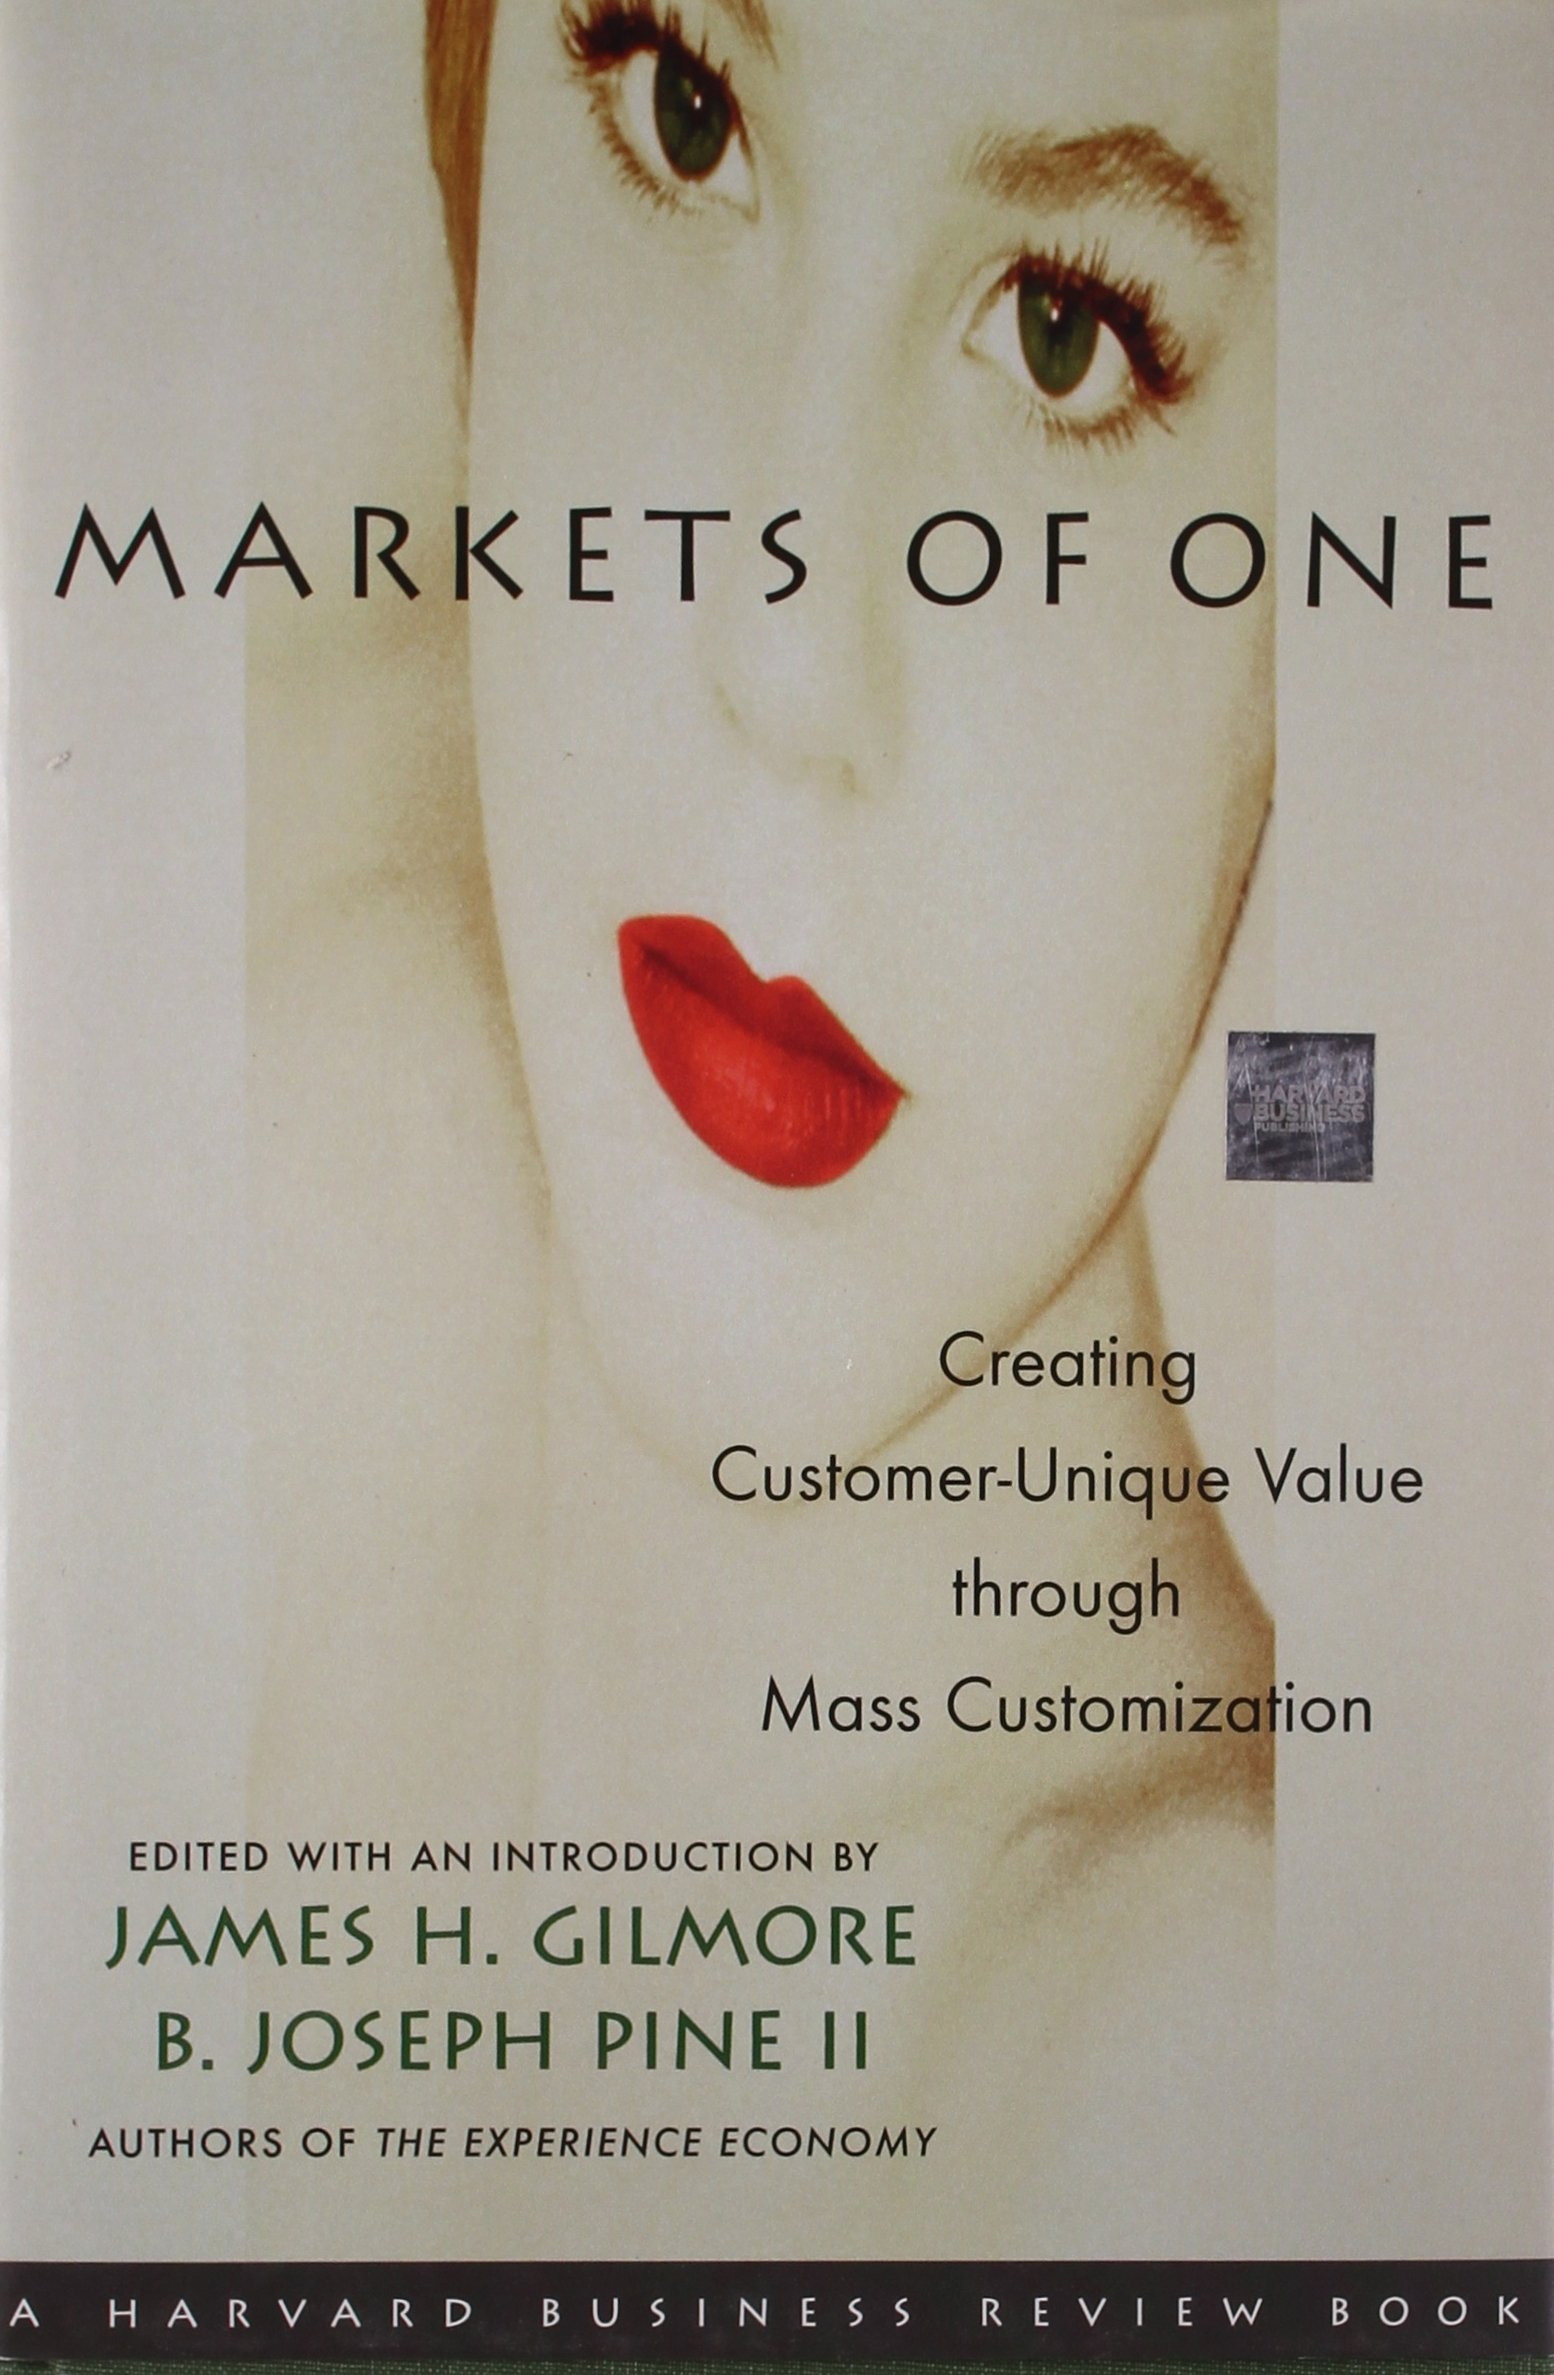 Download Markets of One: Creating Customer-Unique Value through Mass Customization PDF